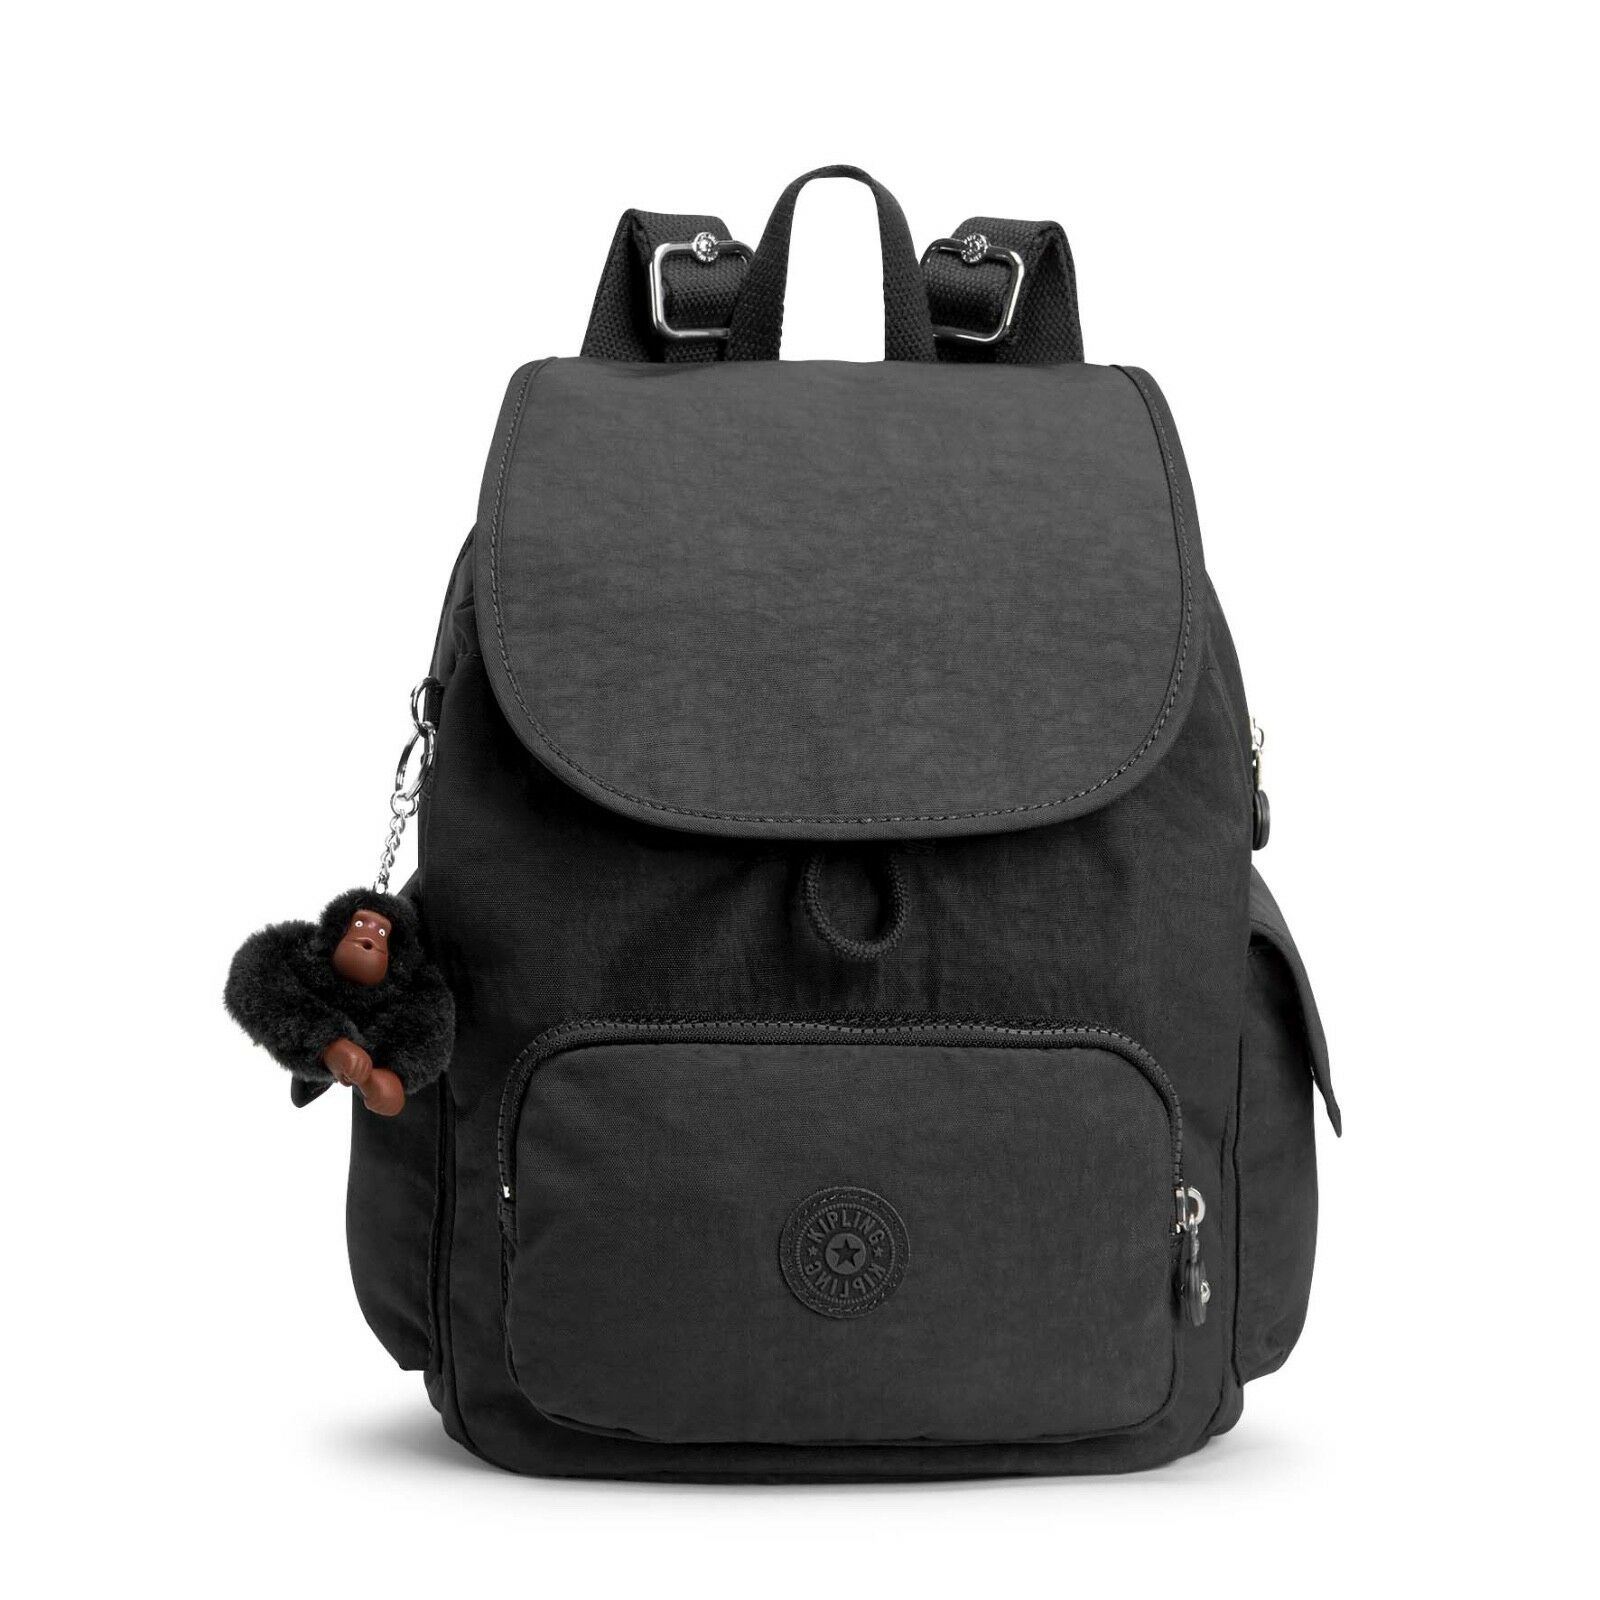 Kipling City Pack S Medium Backpackrucksack True Black Rrp £87